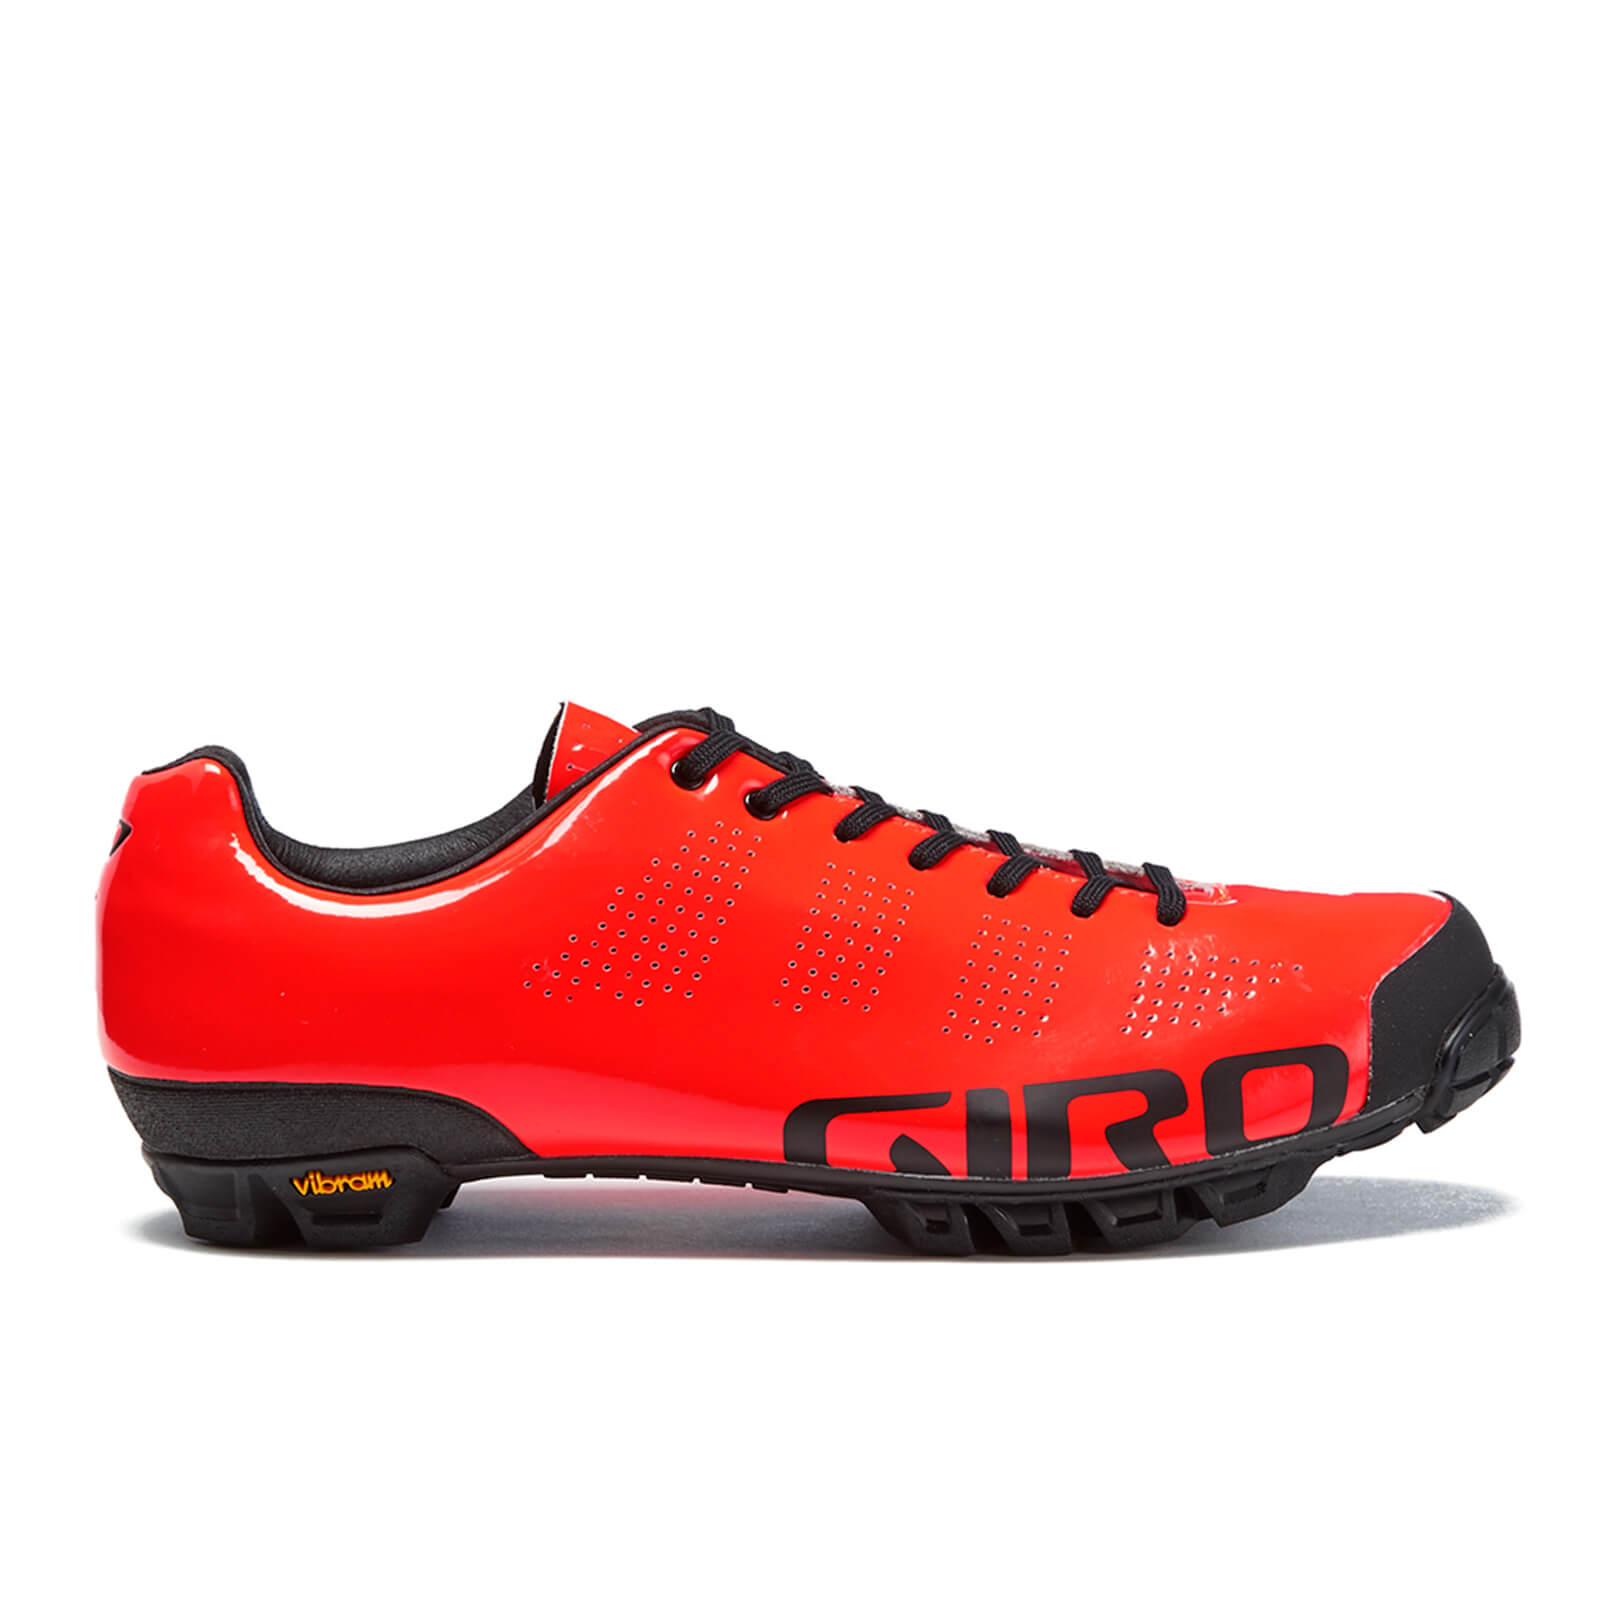 Giro Empire VR90 Dirt Cycling Shoes - Red/Black